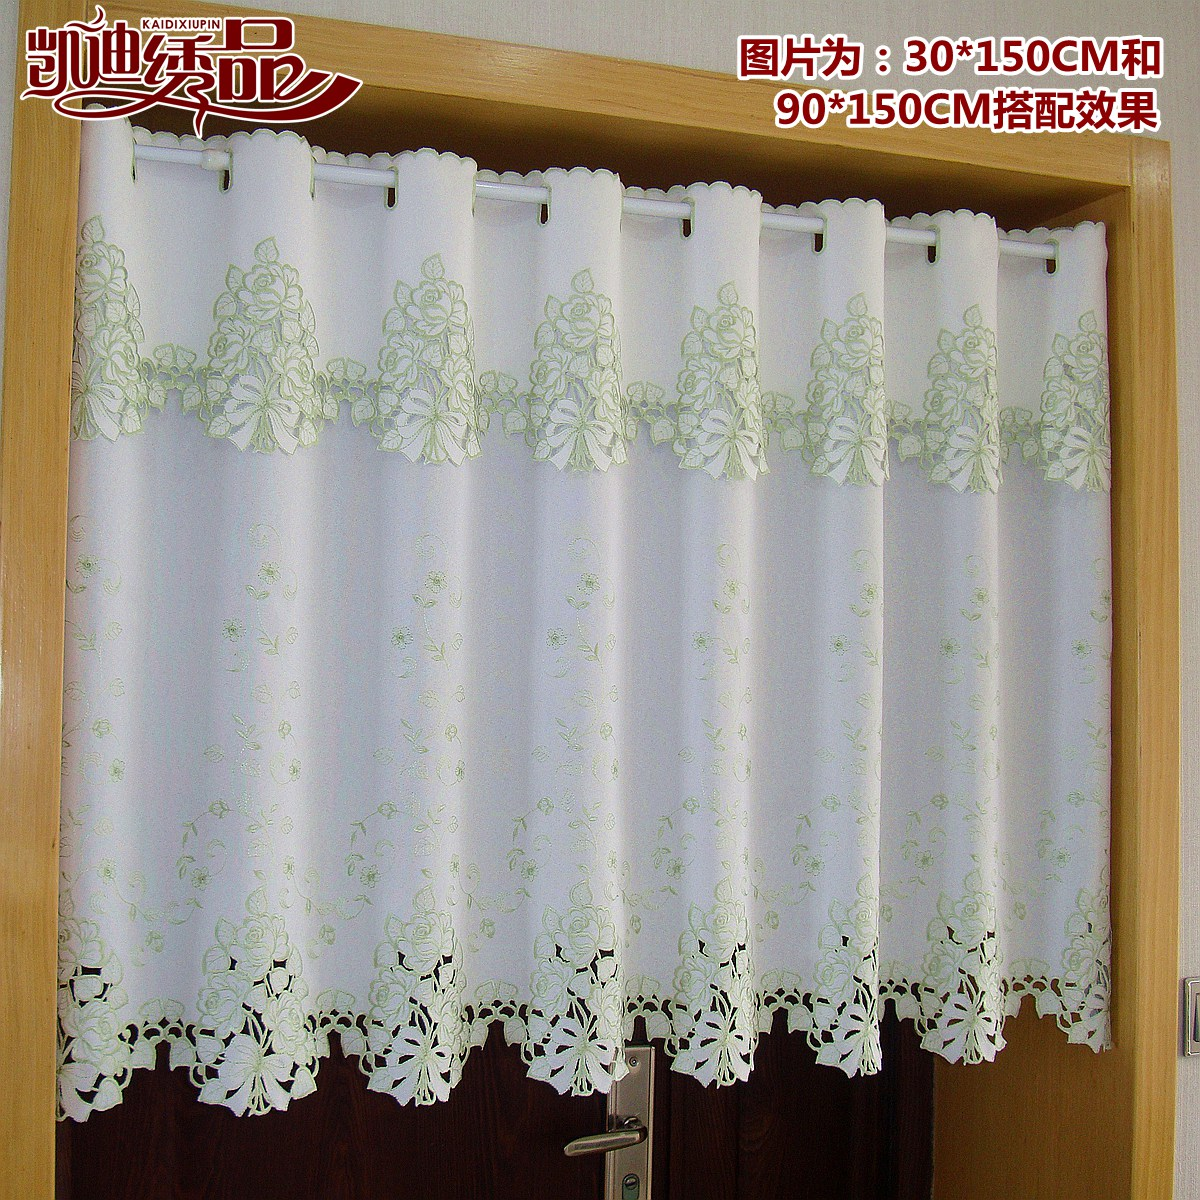 Aliexpress Com Buy Kitchen Short Curtains Window: Aliexpress.com : Buy Quality Tube Curtain Short Embroidery Fabric Window Curtain Finished